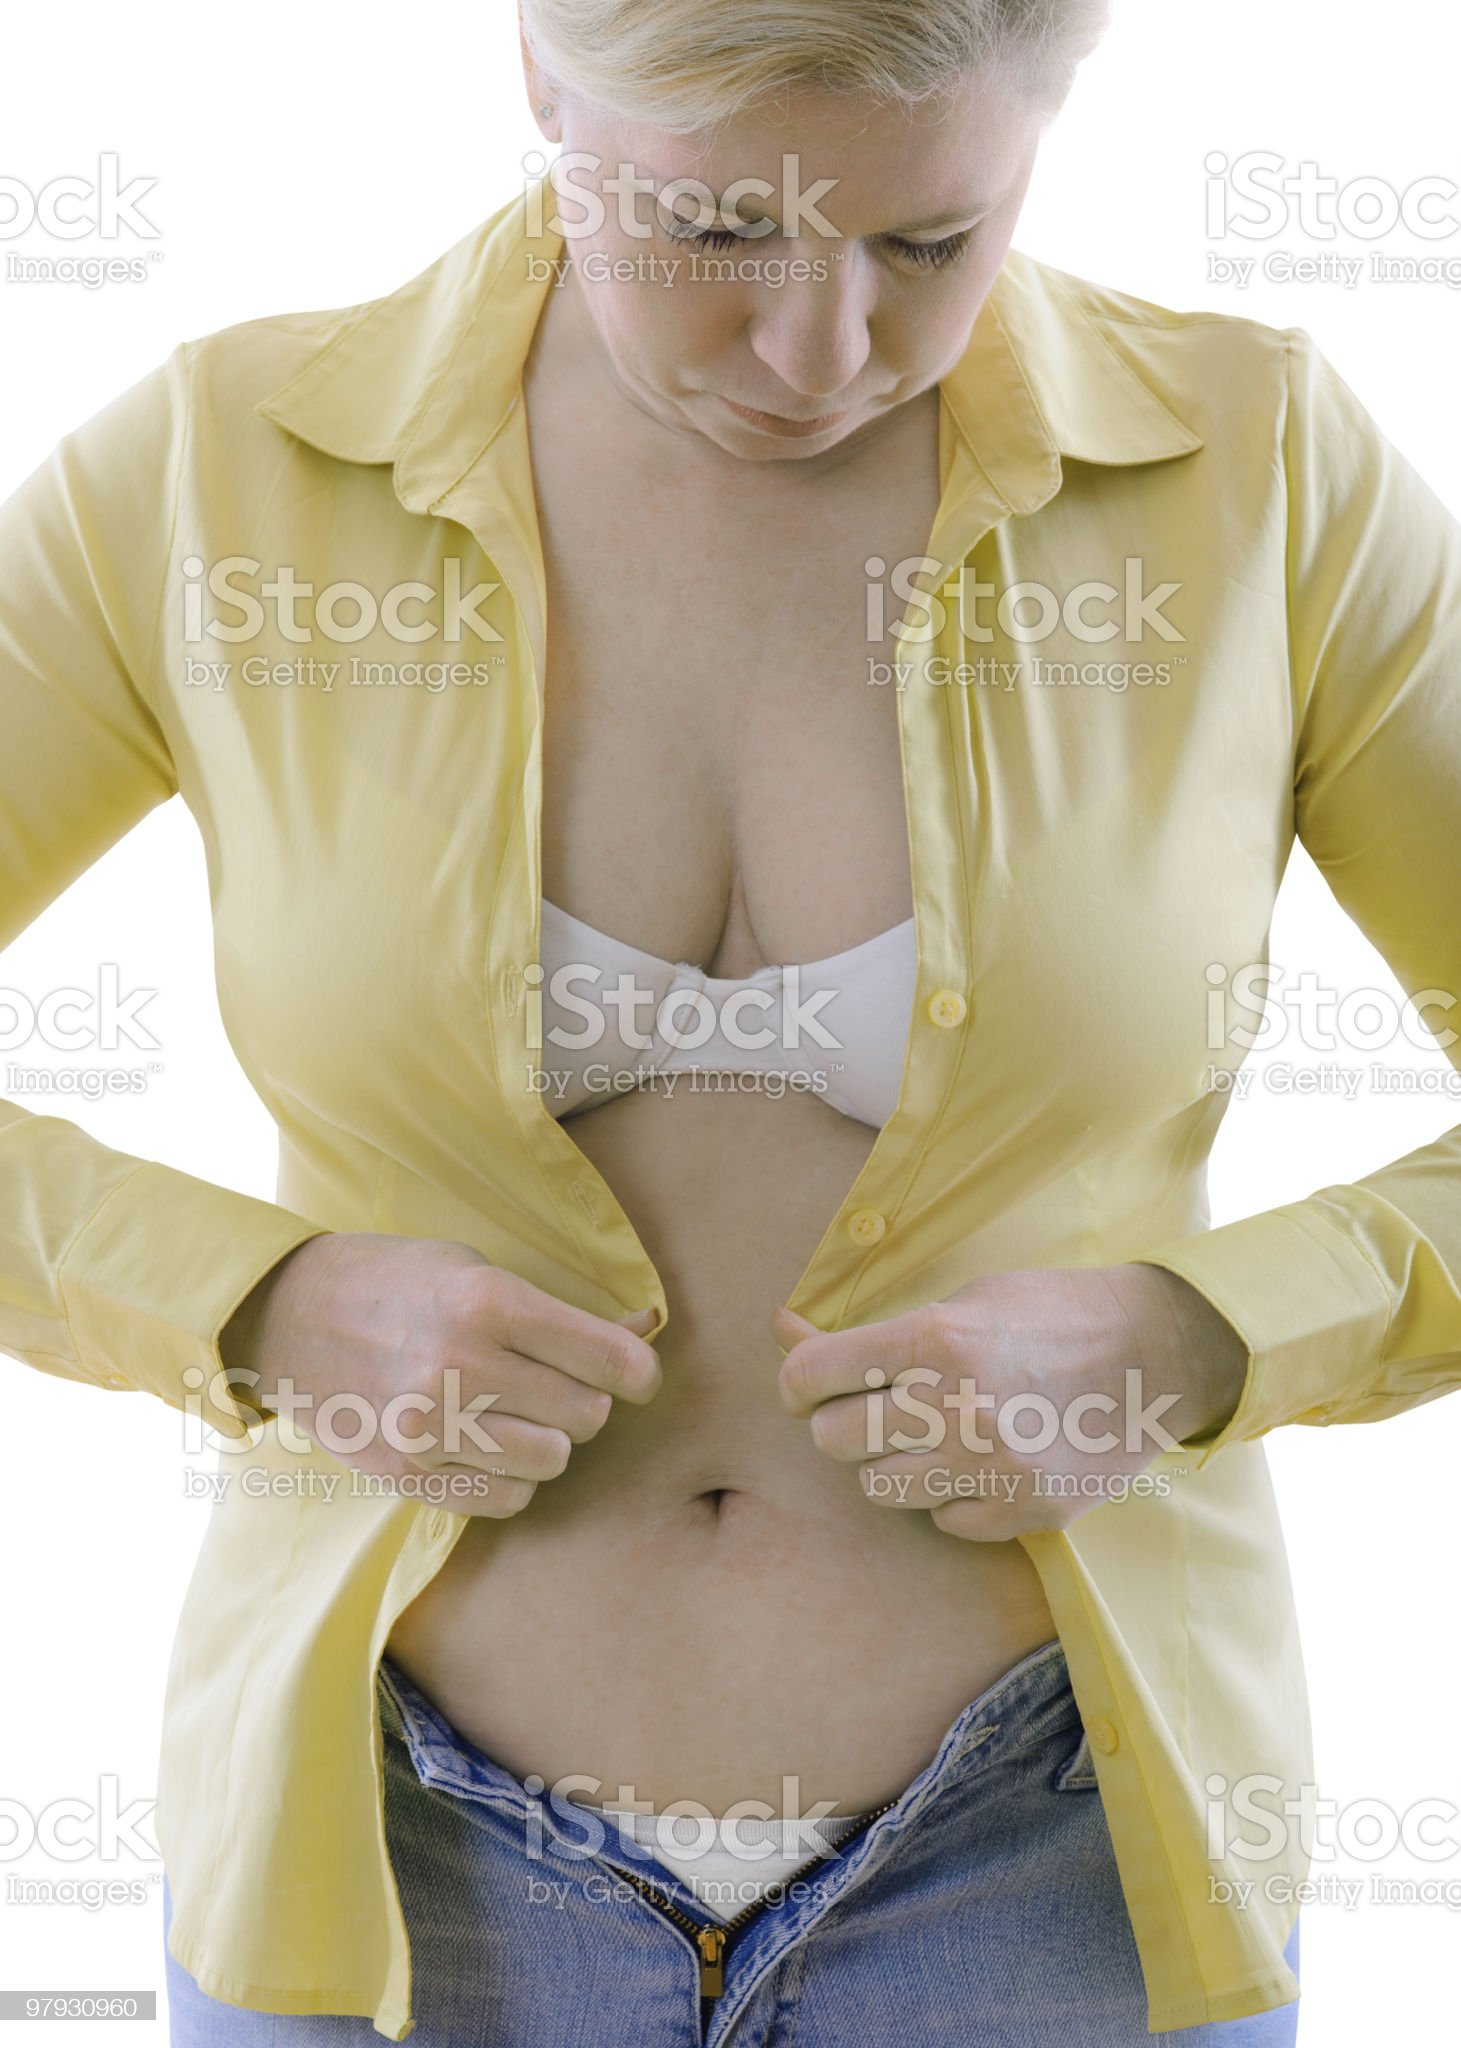 overweight woman royalty-free stock photo